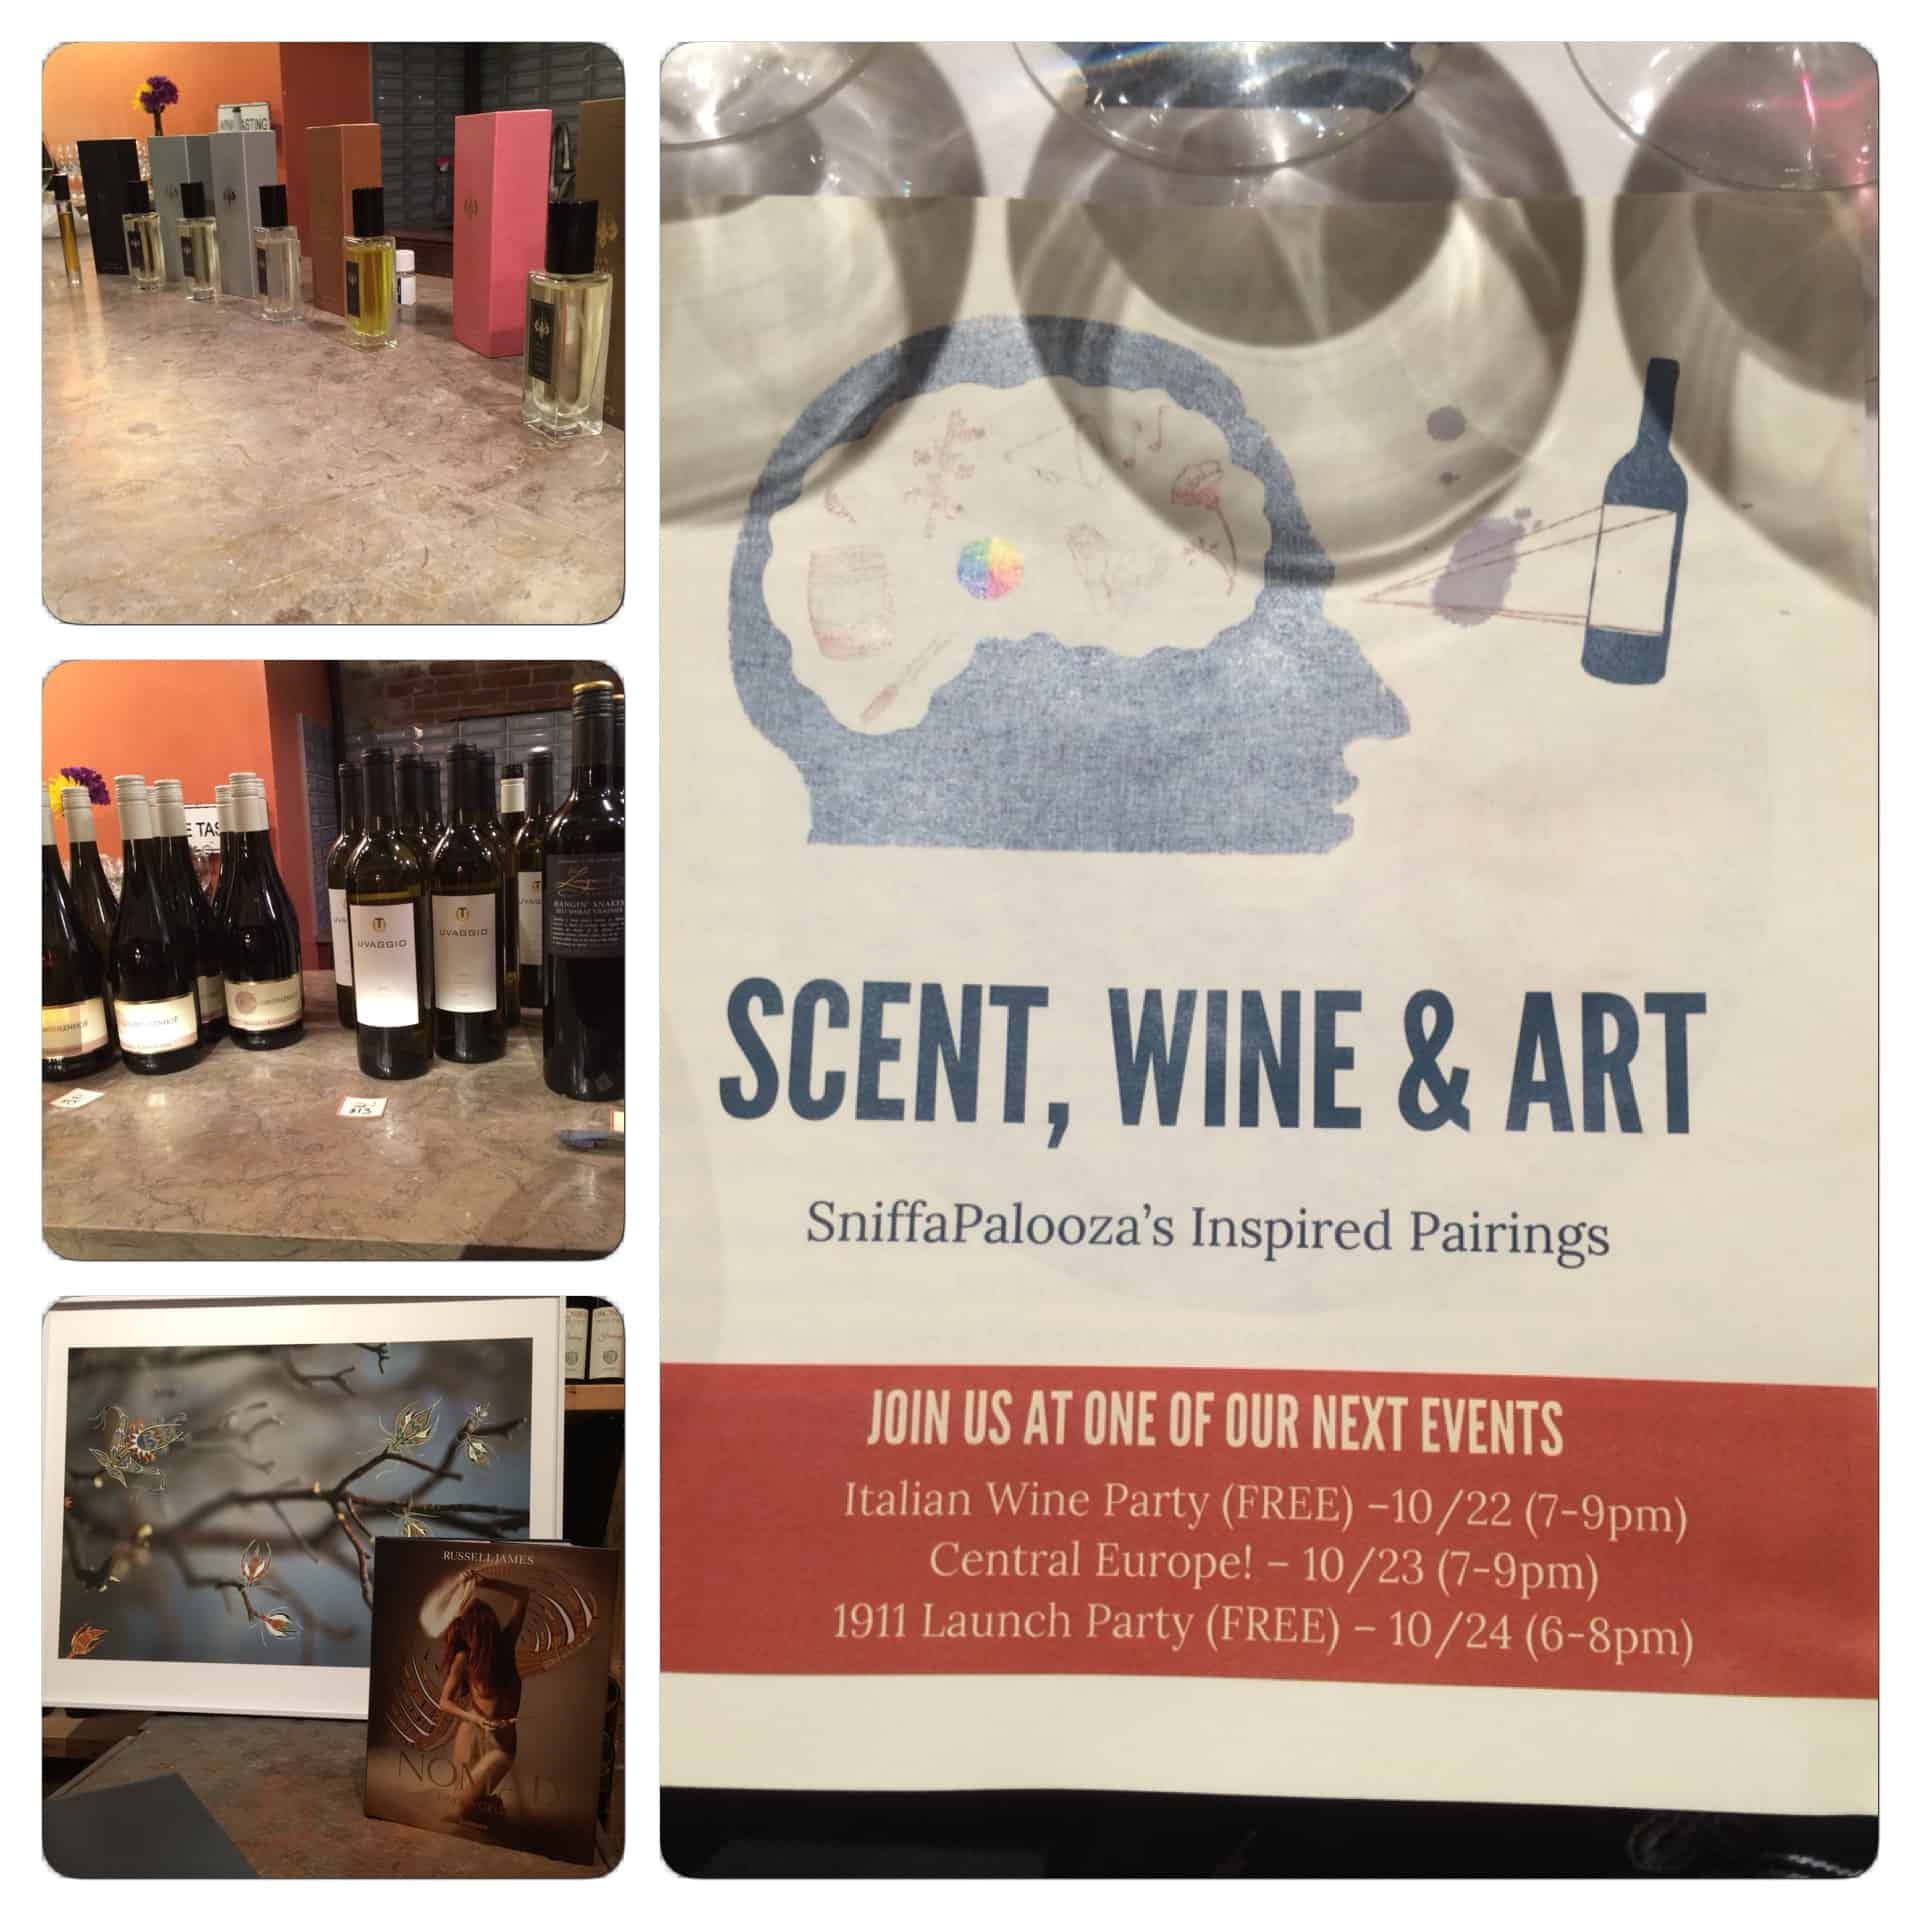 2014 scent wine art 1 copy